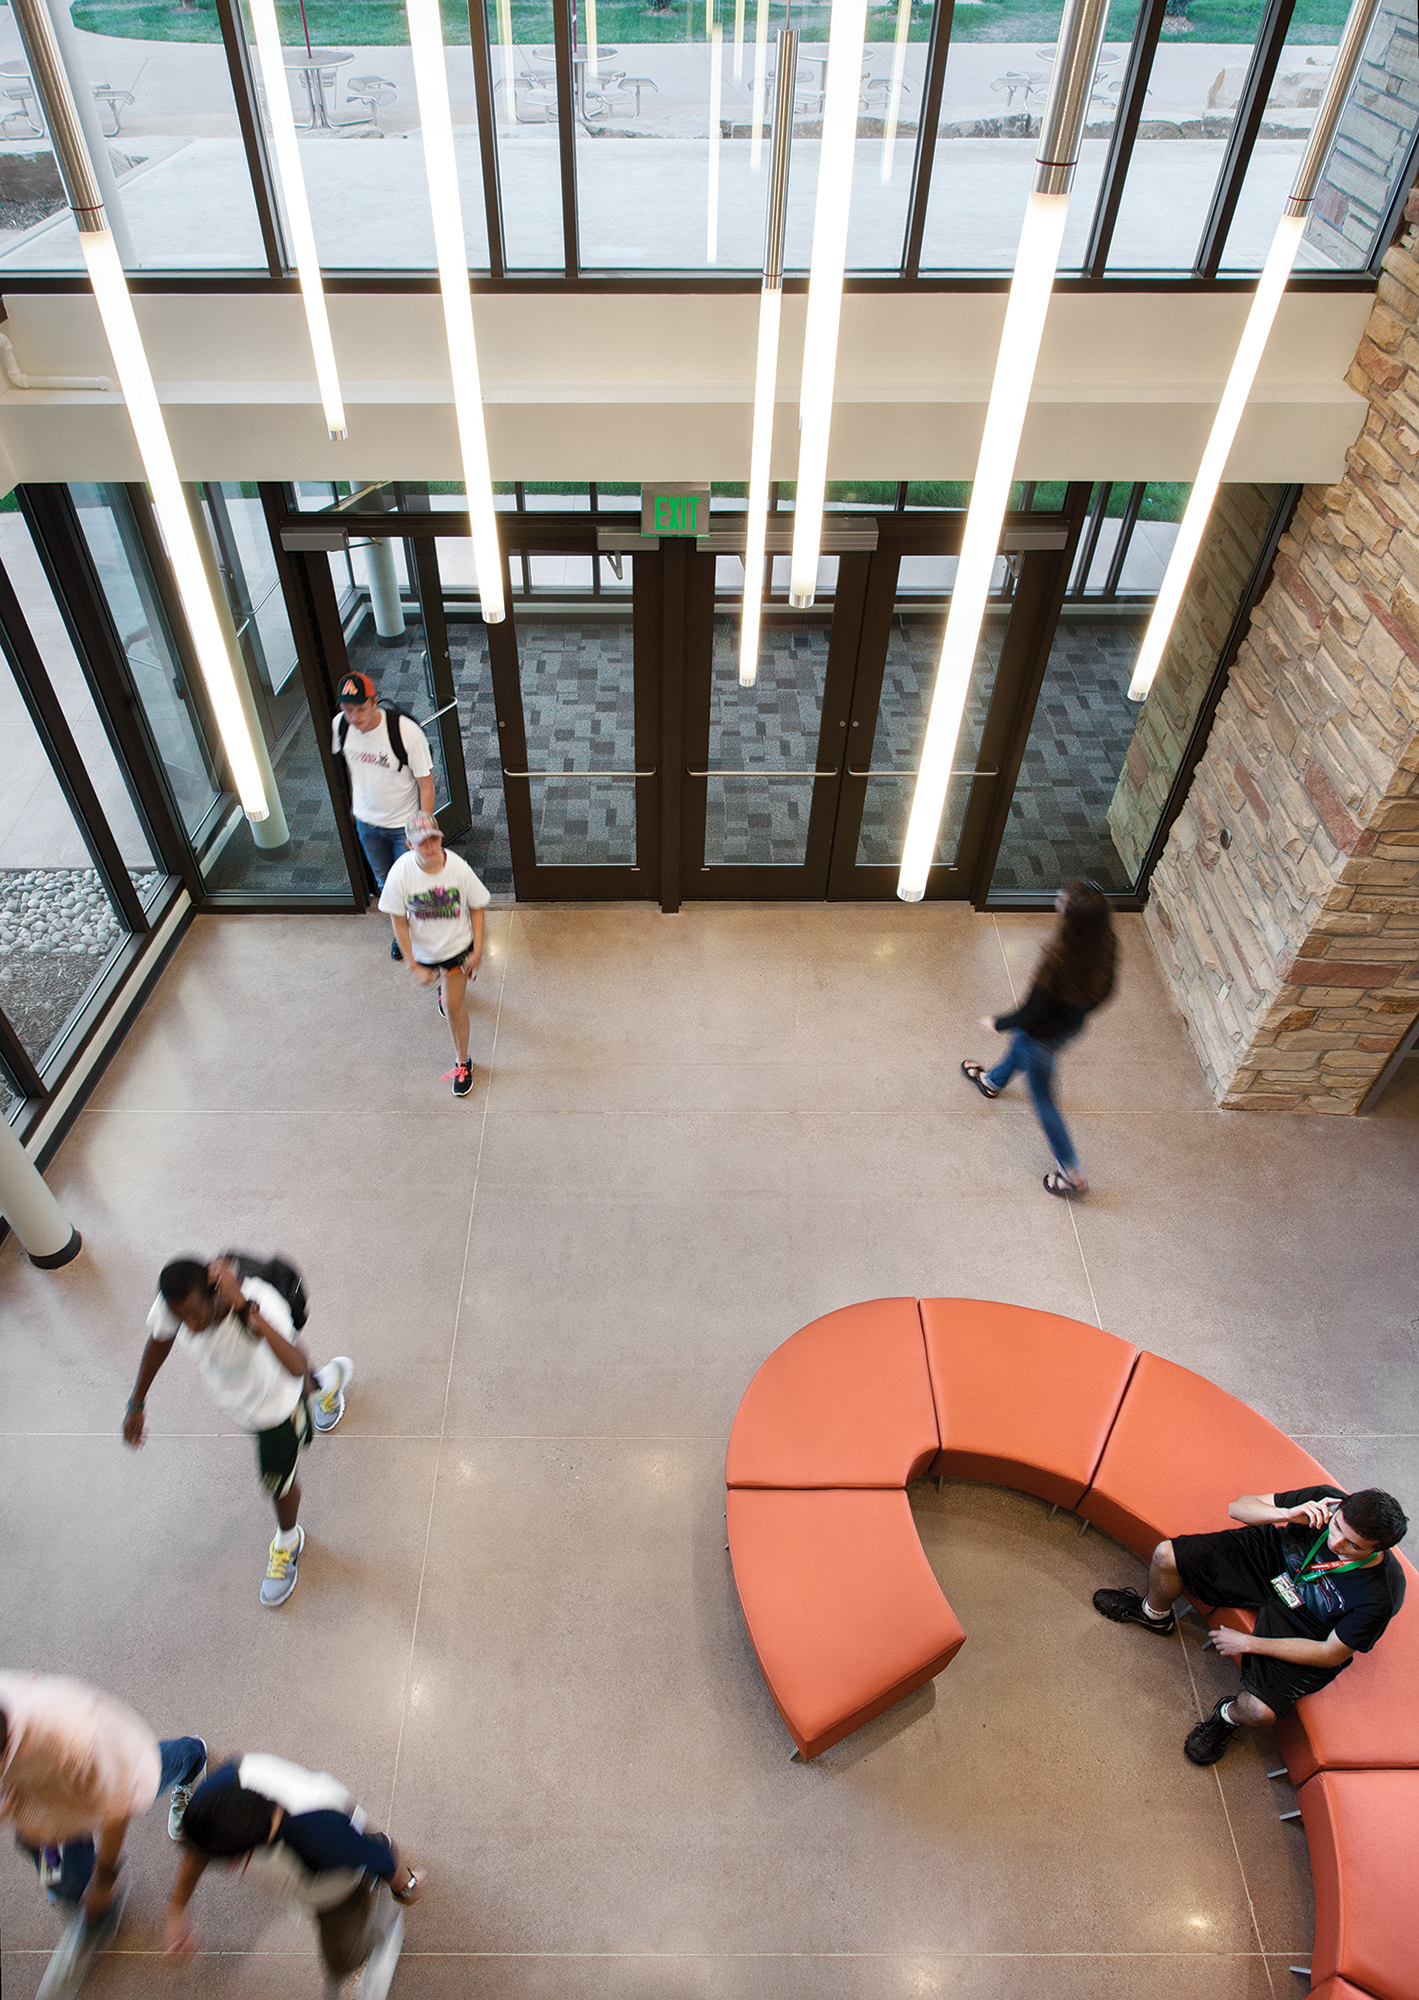 colorado_state_university_fort_collins_durrell_center_entry.jpg